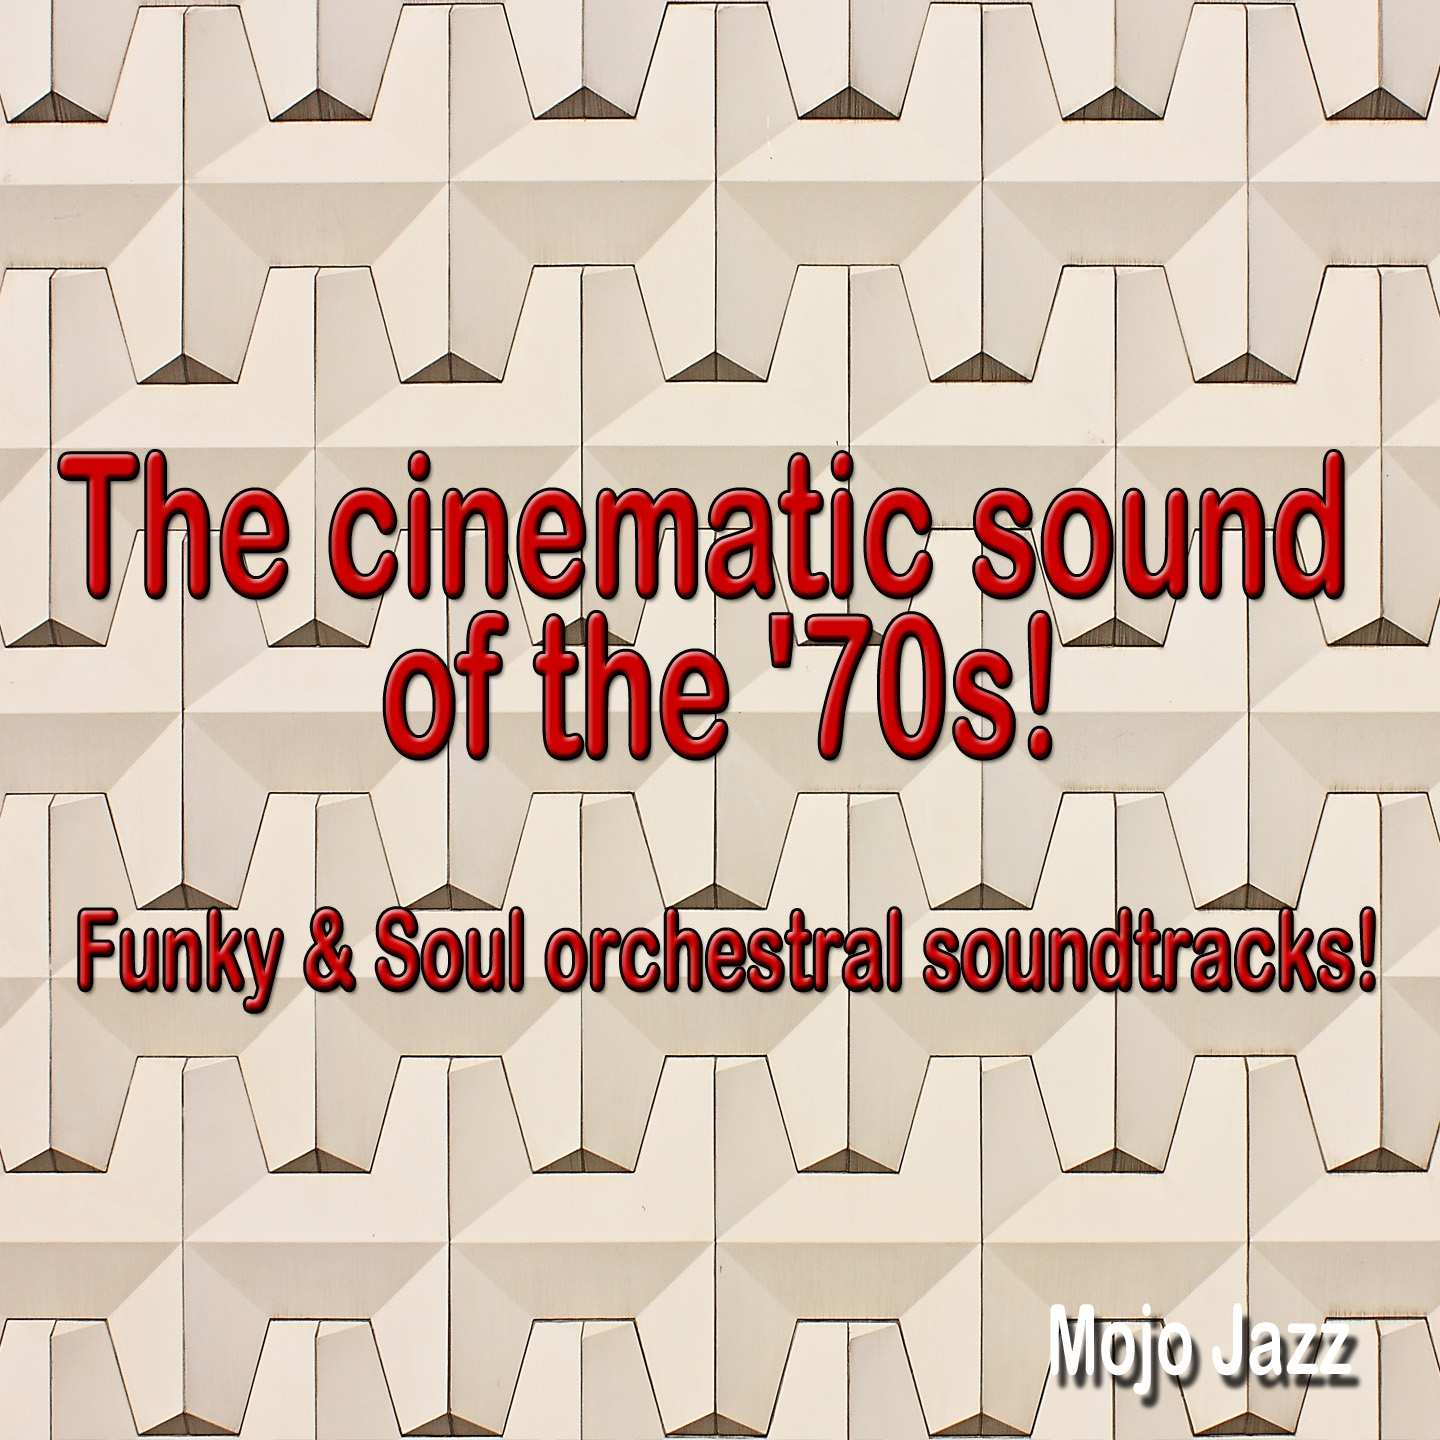 The Cinematic Sound of the '70s!